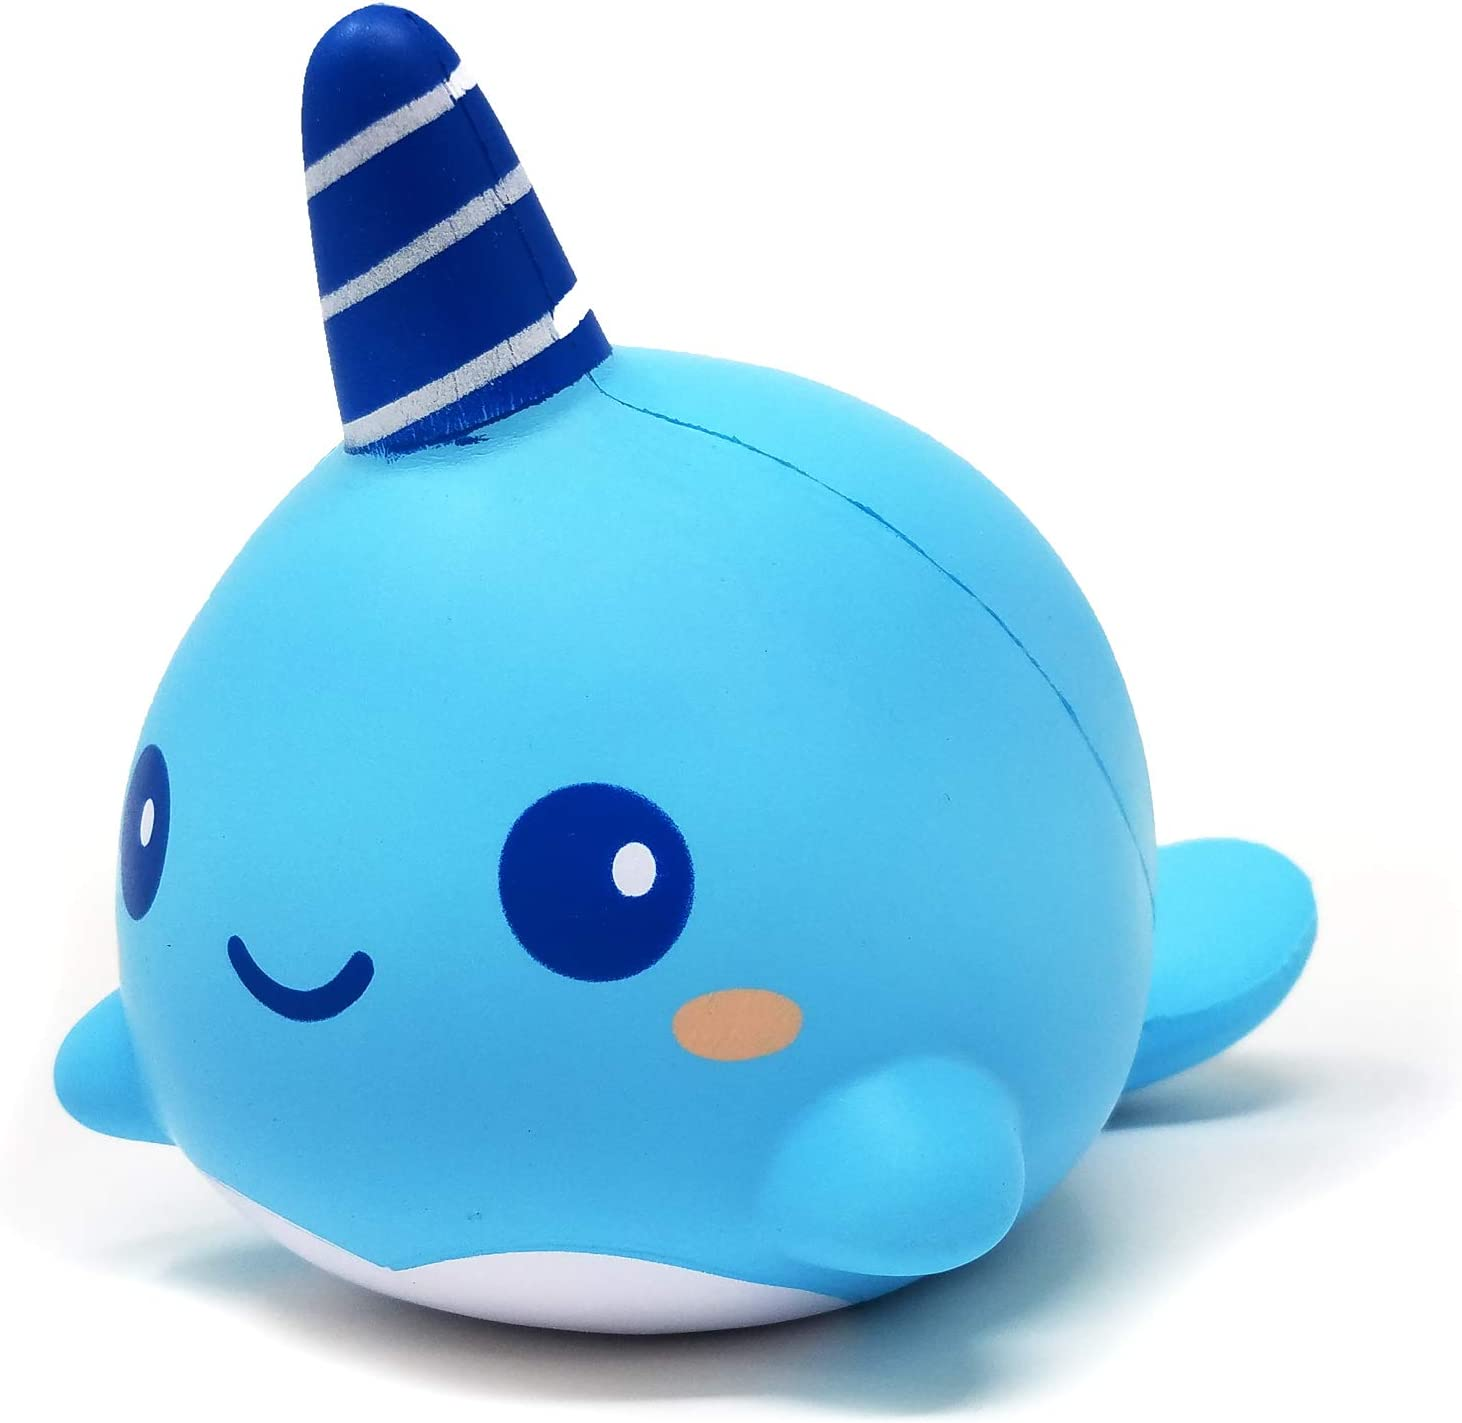 ibloom Billie The Whale Cute Animal Slow Rising Squishy Toy (Light Blue, Mint Scented, 8 Inch) [Kawaii Squishies for Birthday Gift Boxes, Party Favors, Stress Balls for Kids, Girls, Boys, Adults]